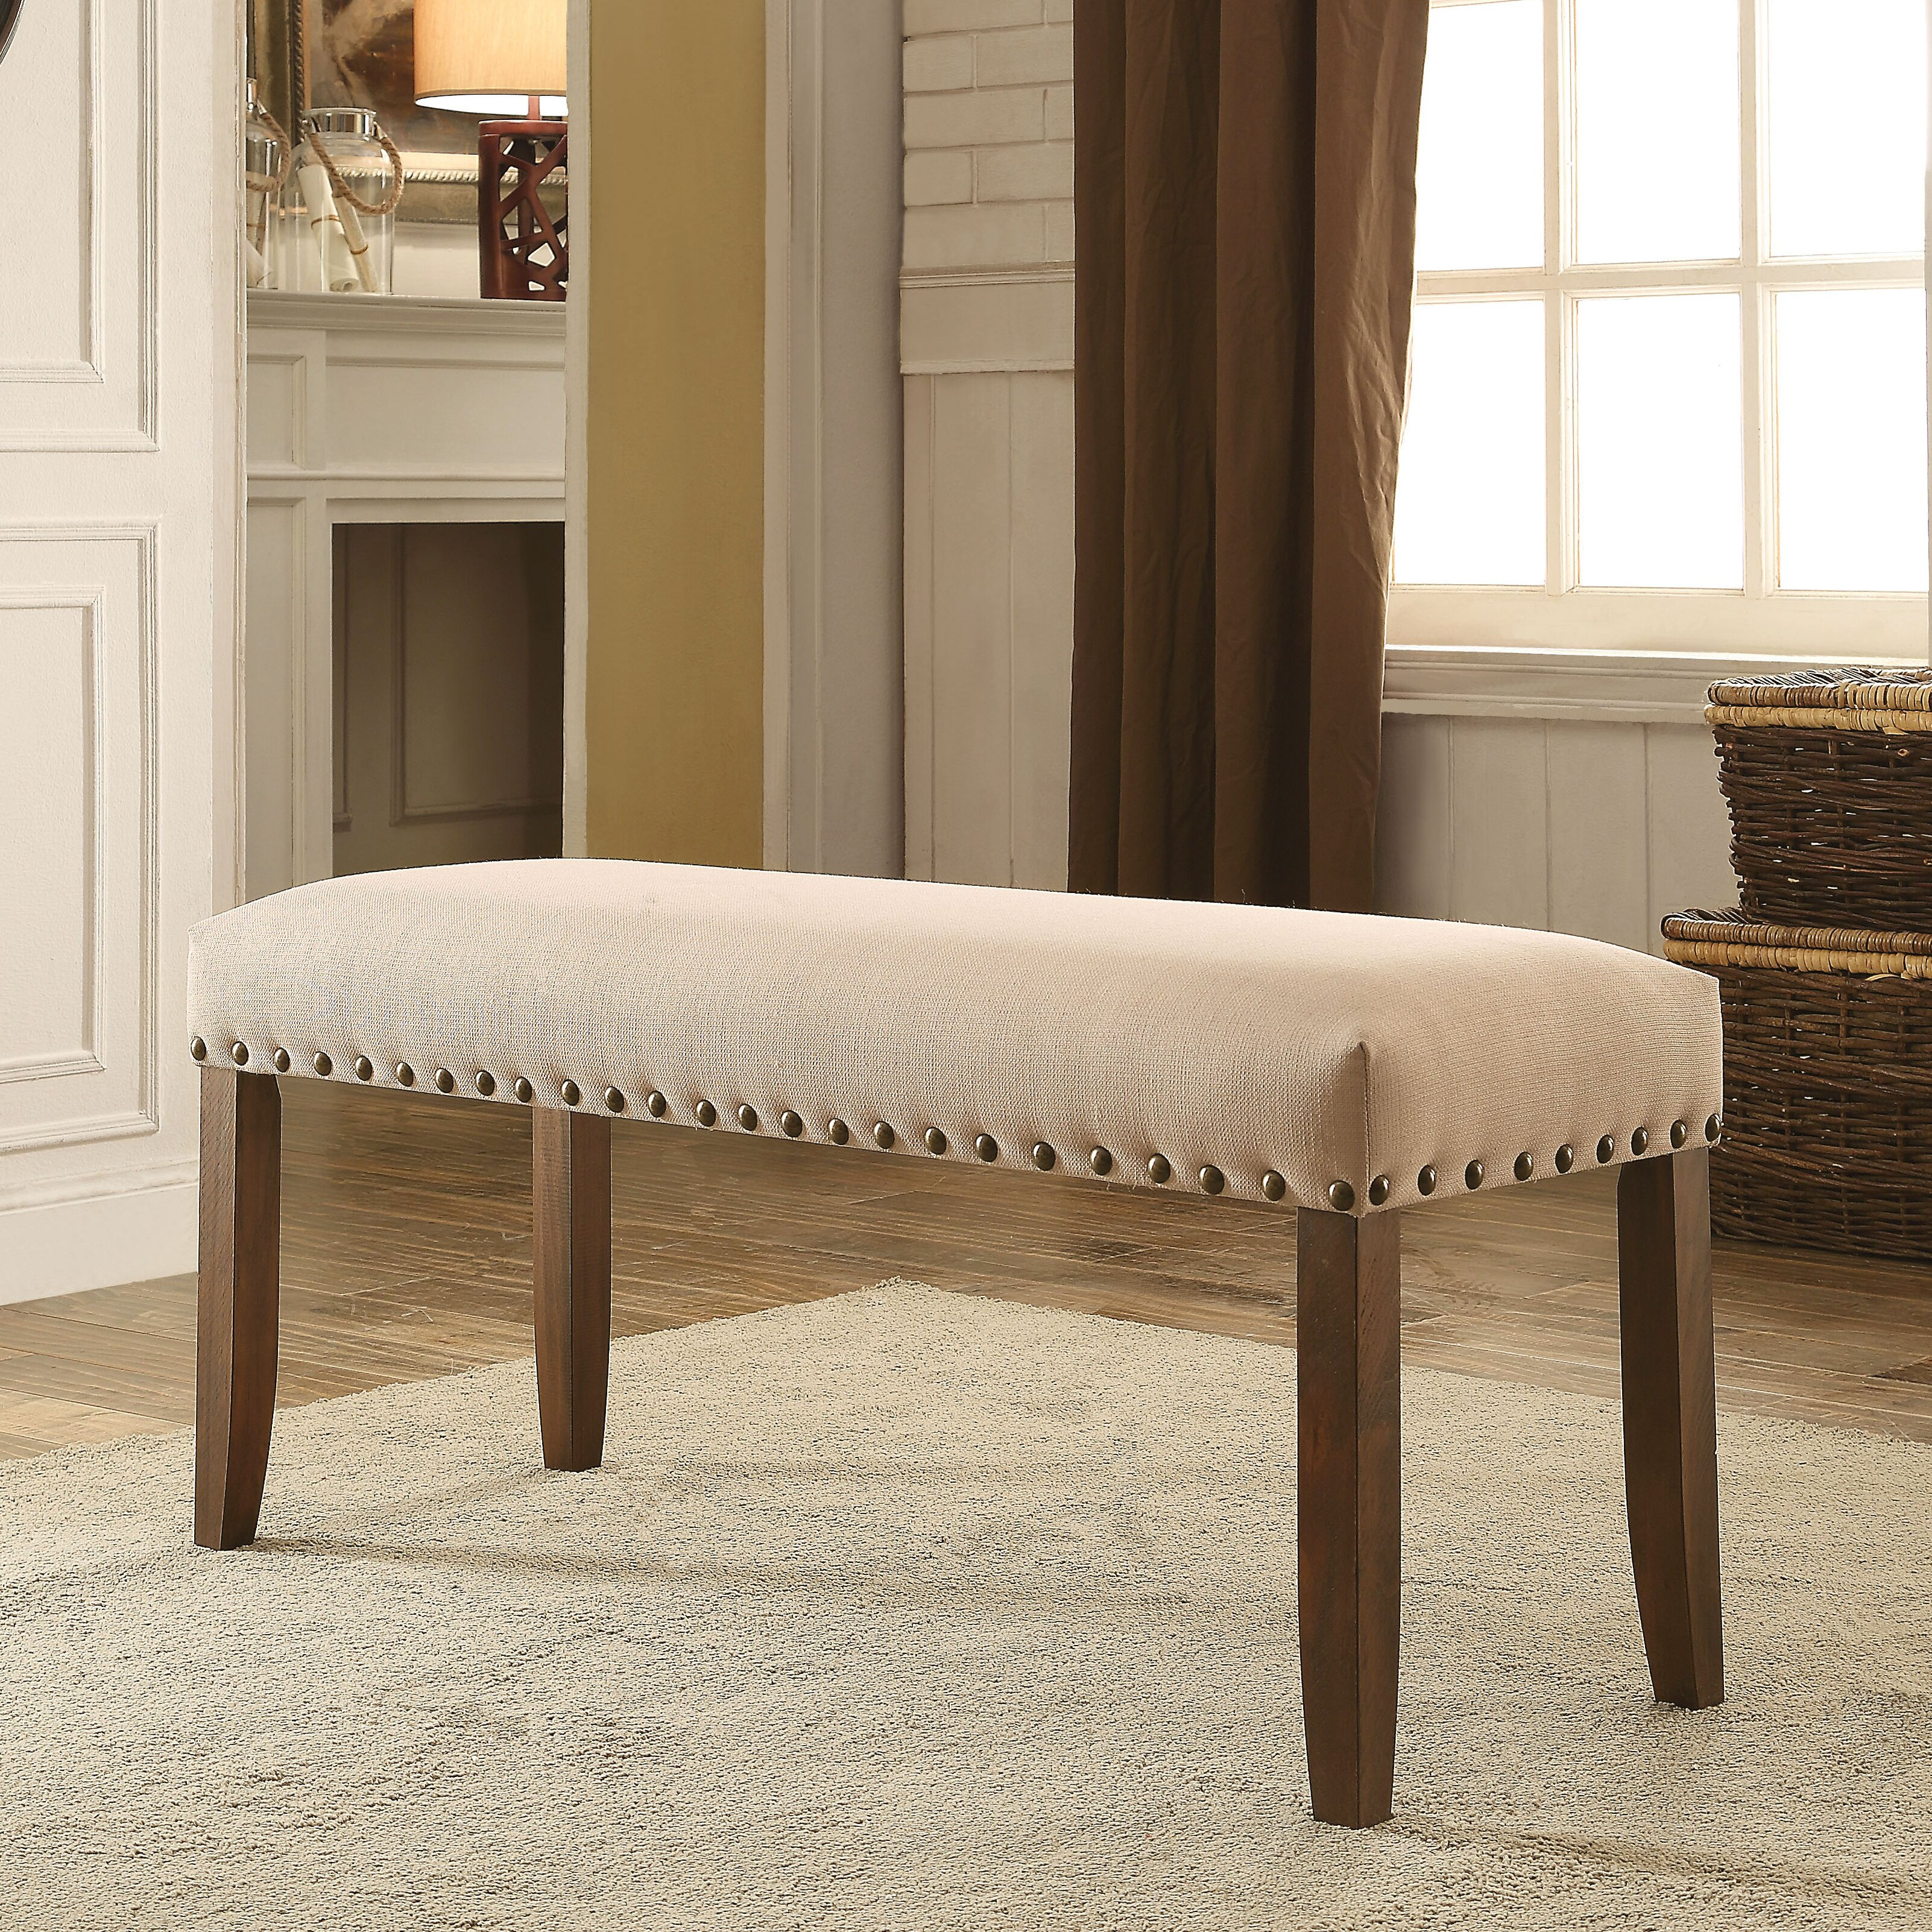 Loon Peak Holly Hills Upholstered Kitchen Bench